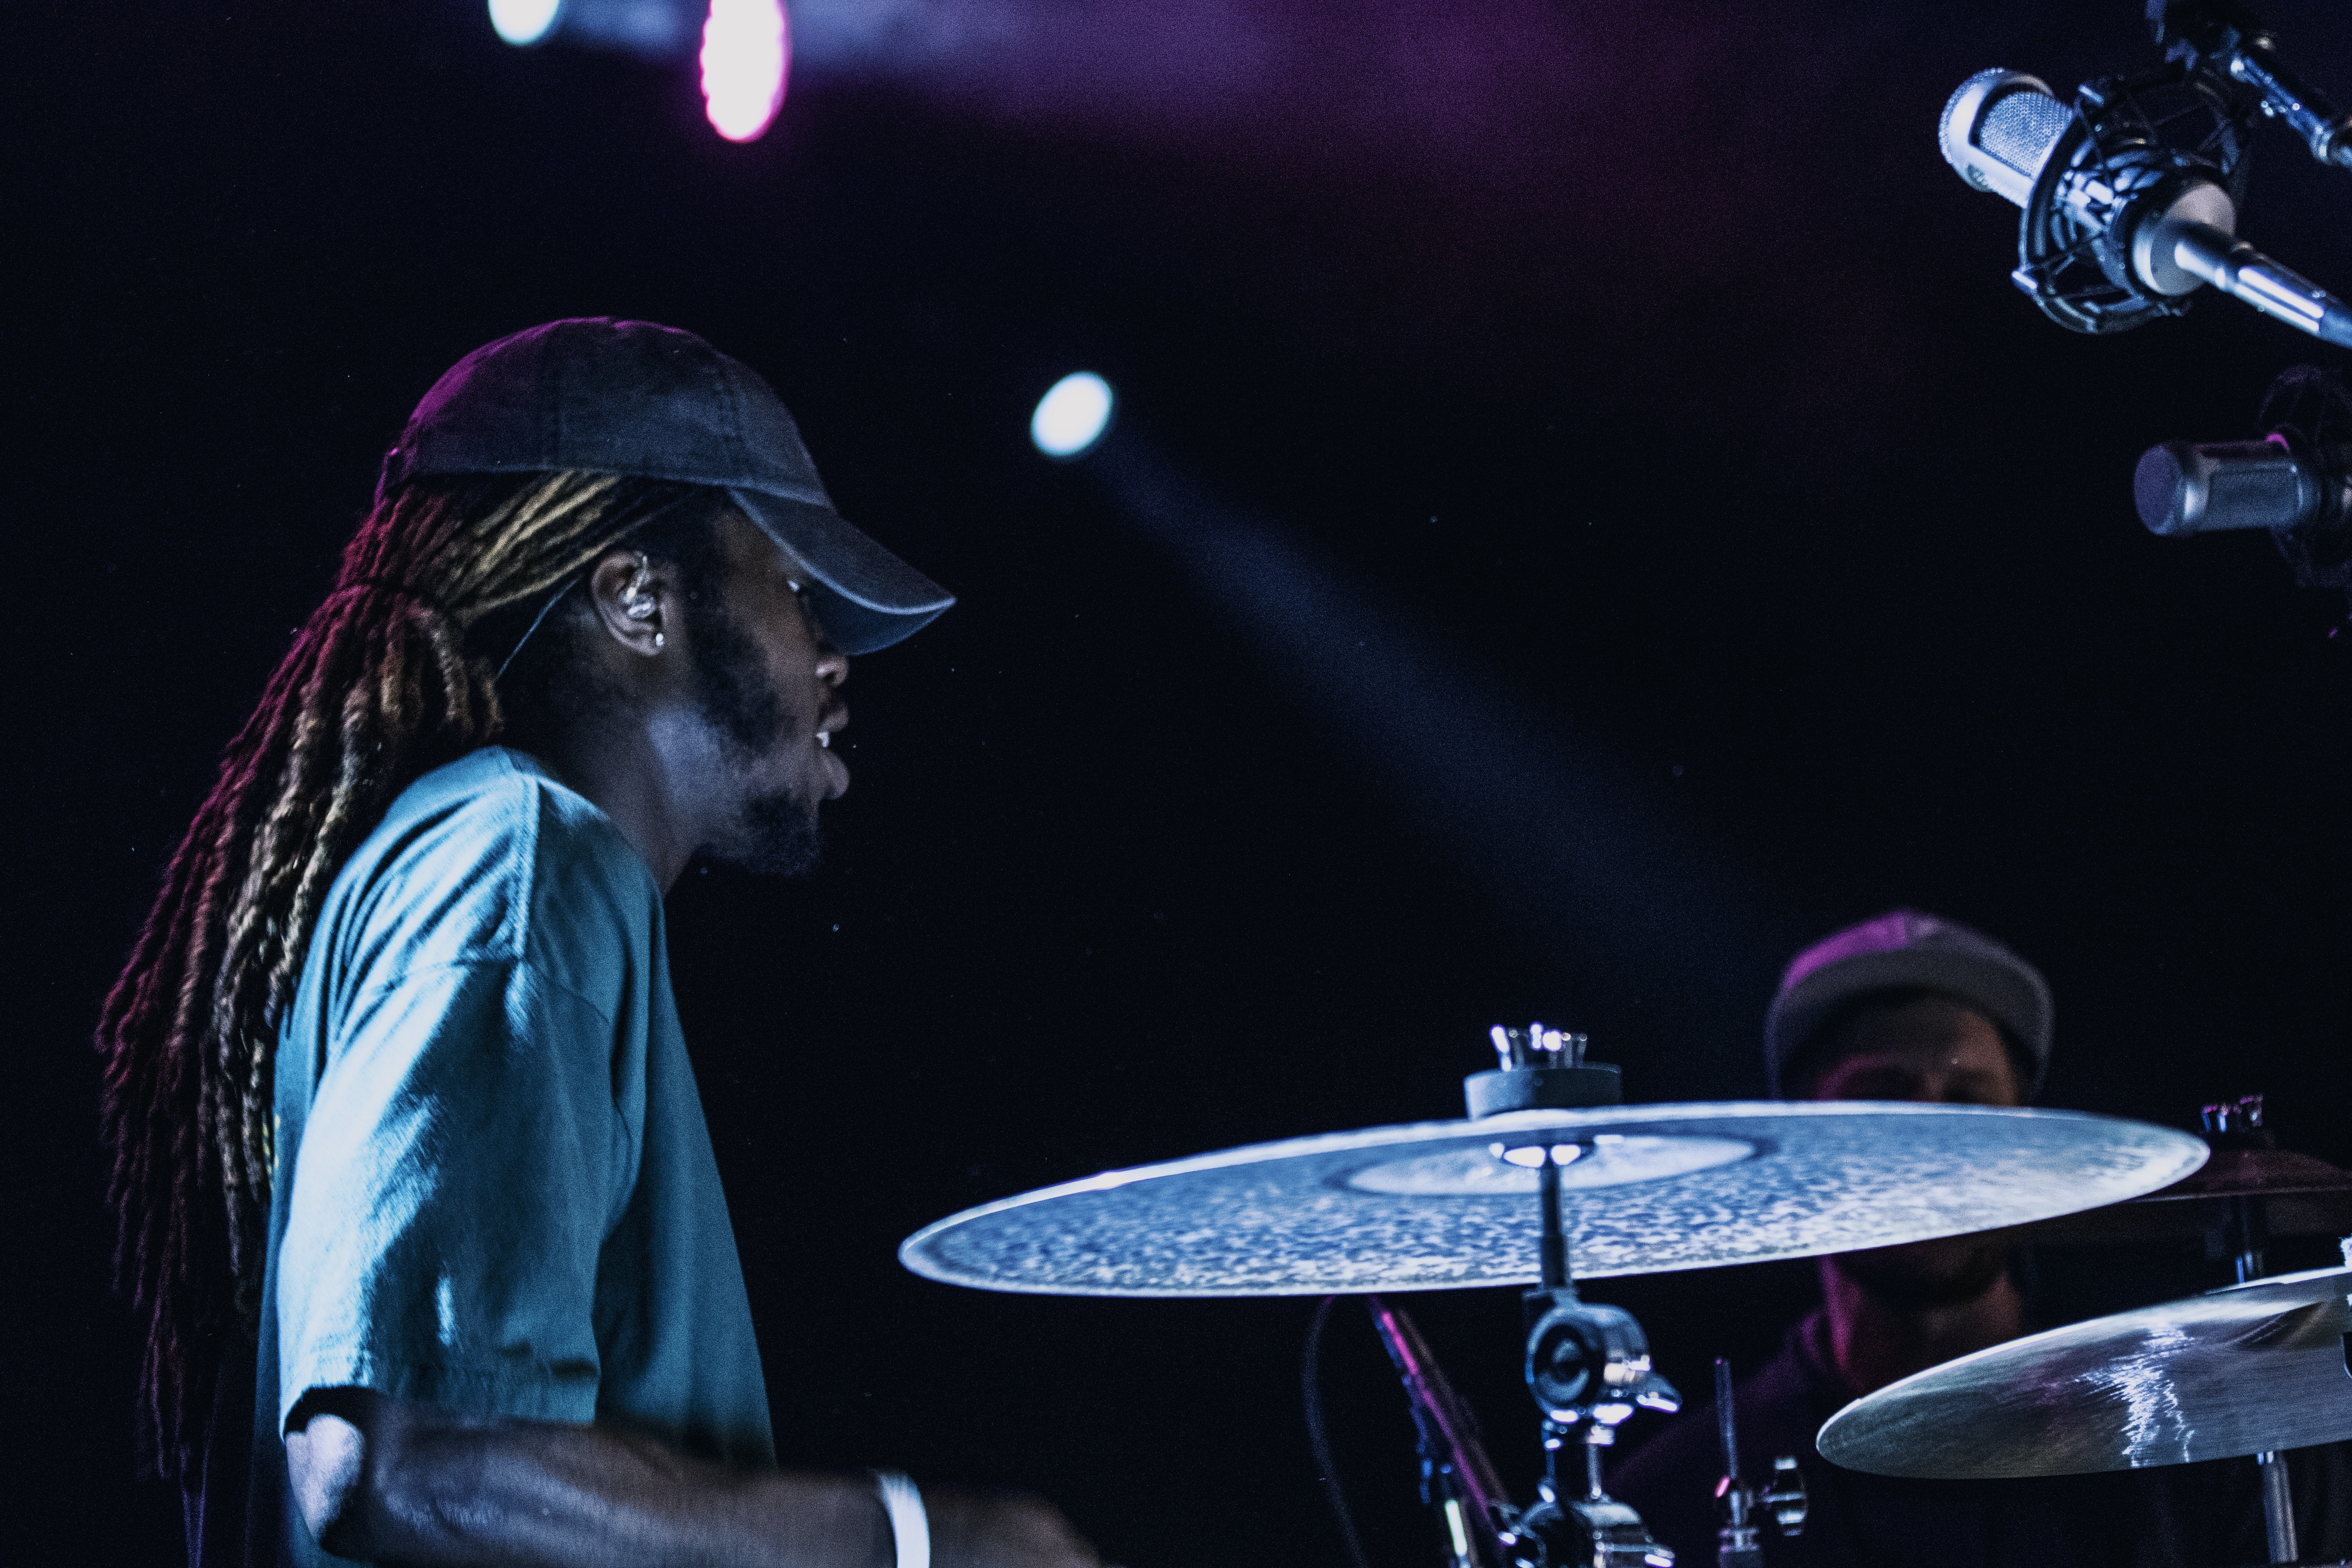 man playing drums beside man wearing gray fitted cap